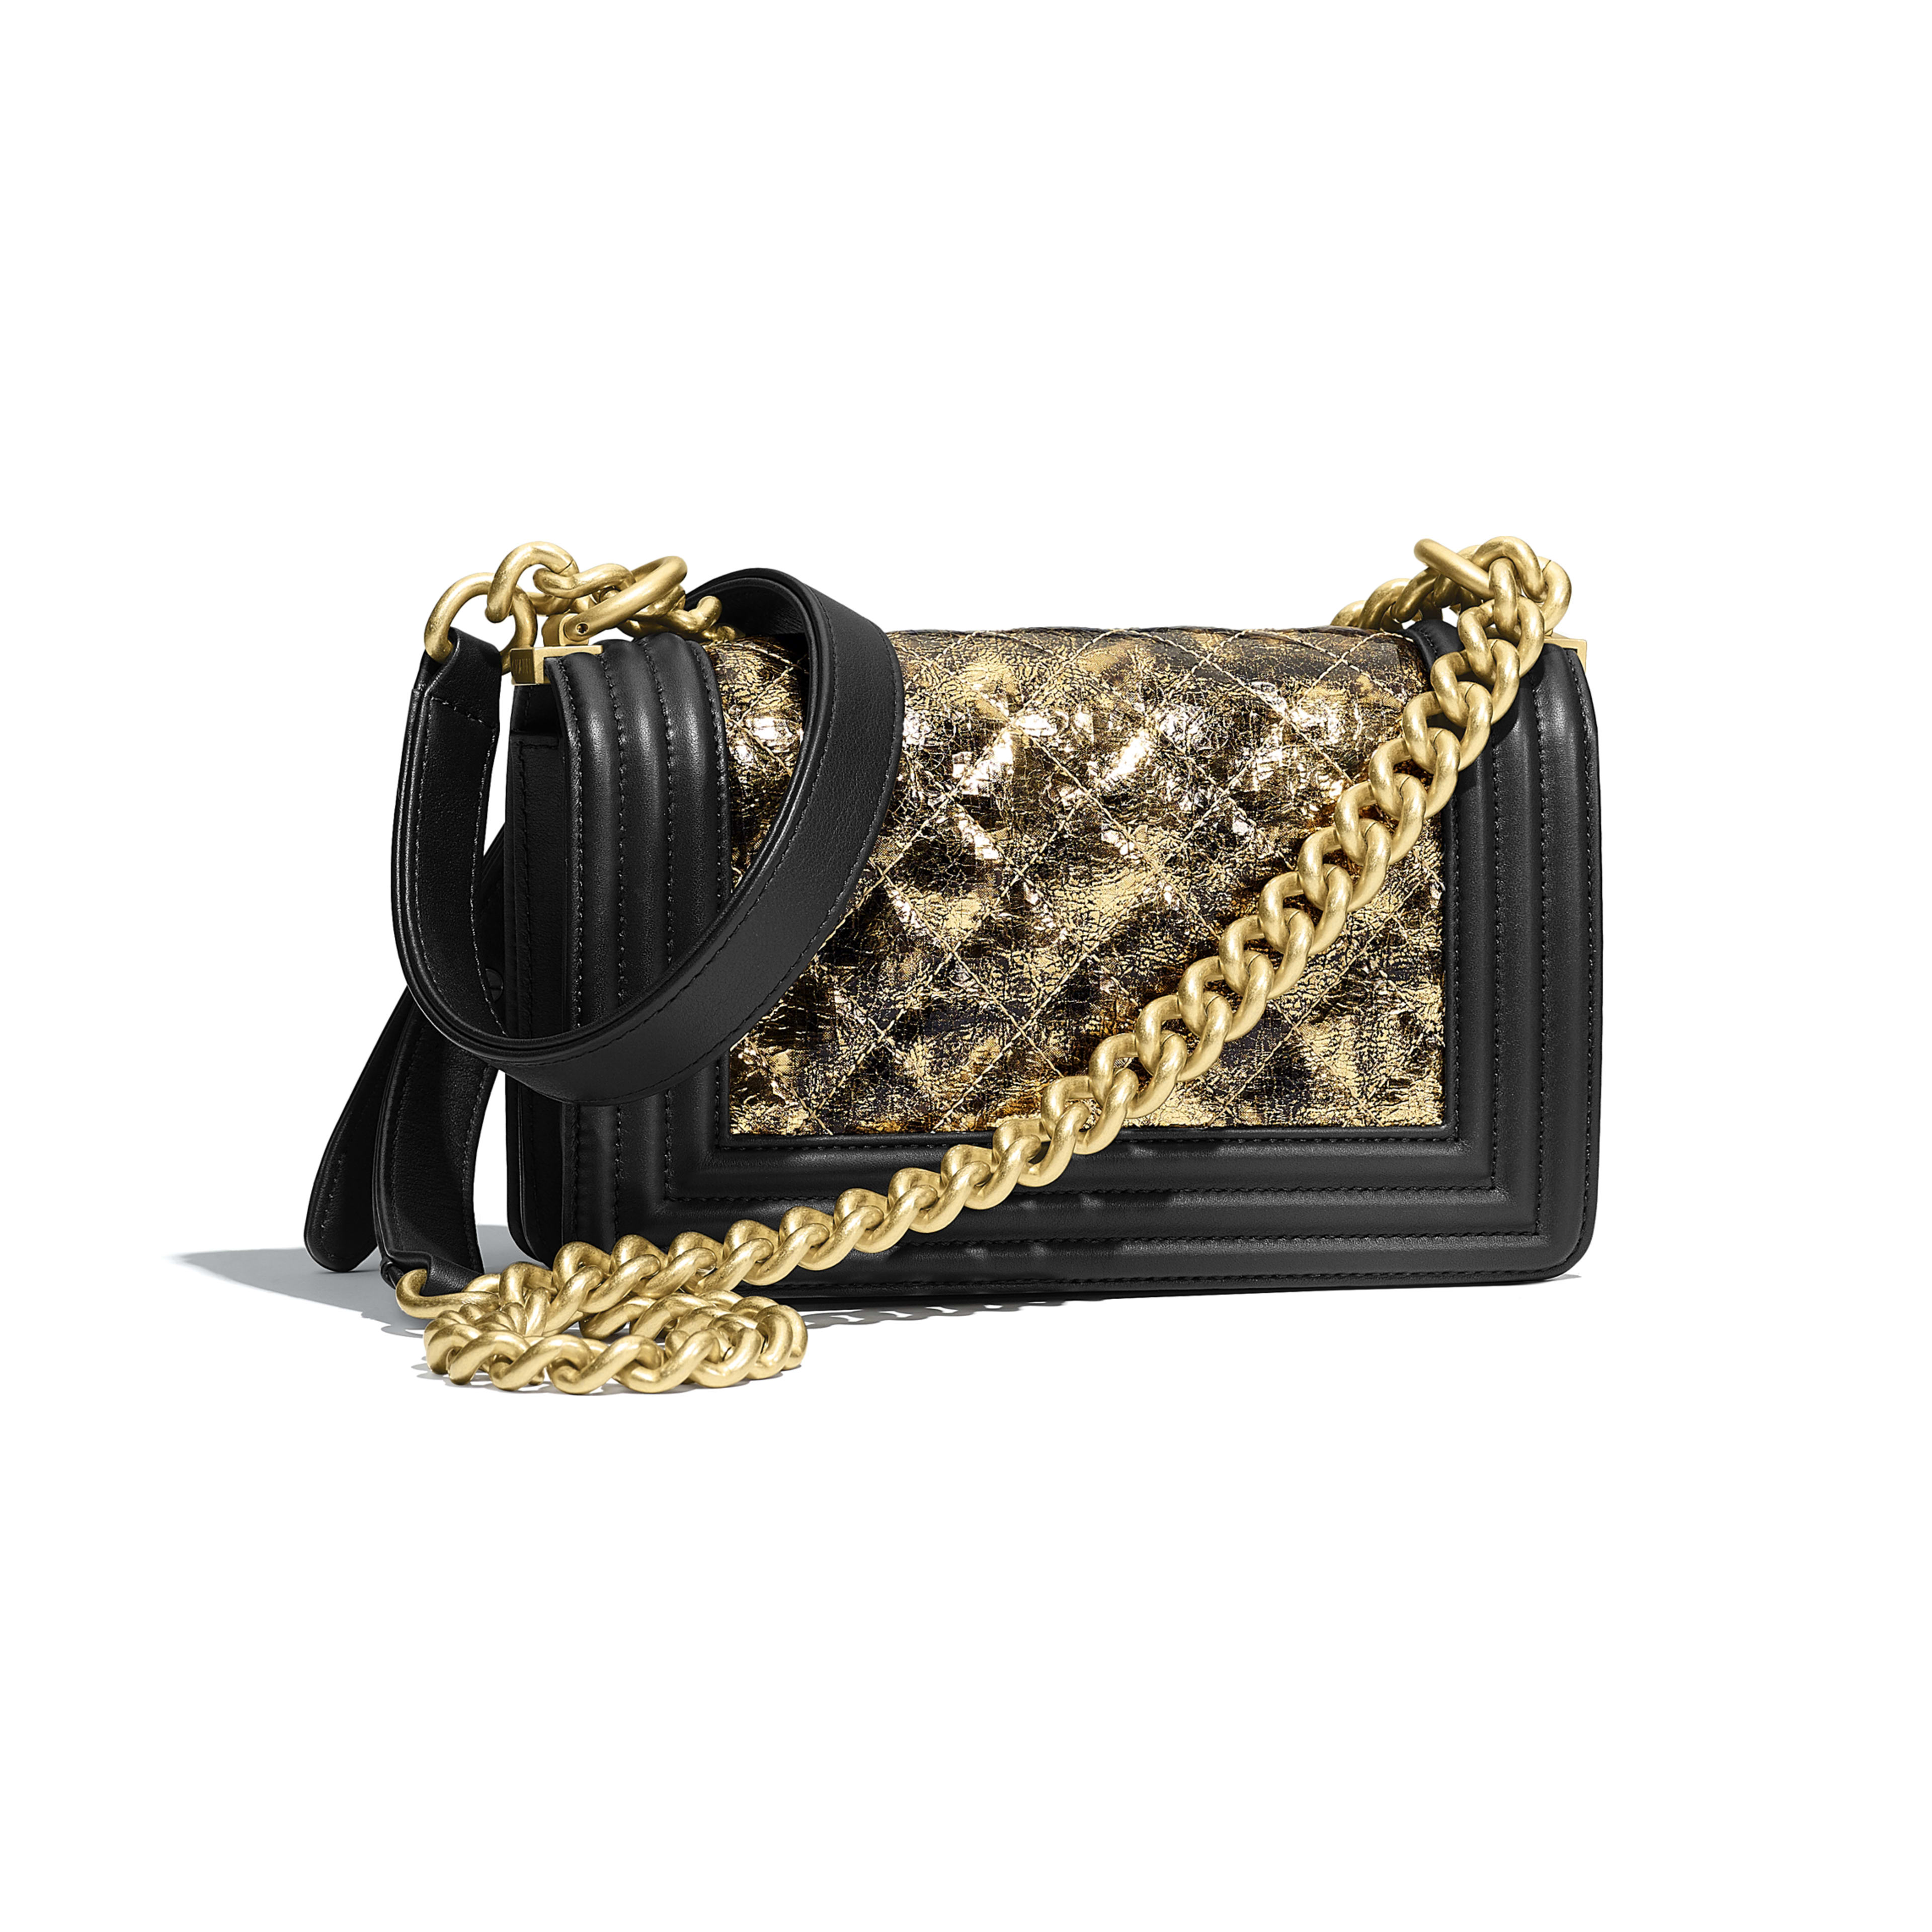 Small BOY CHANEL Handbag - Gold & Black - Metallic Crumpled Goatskin, Calfskin & Gold-Tone Metal - Alternative view - see full sized version